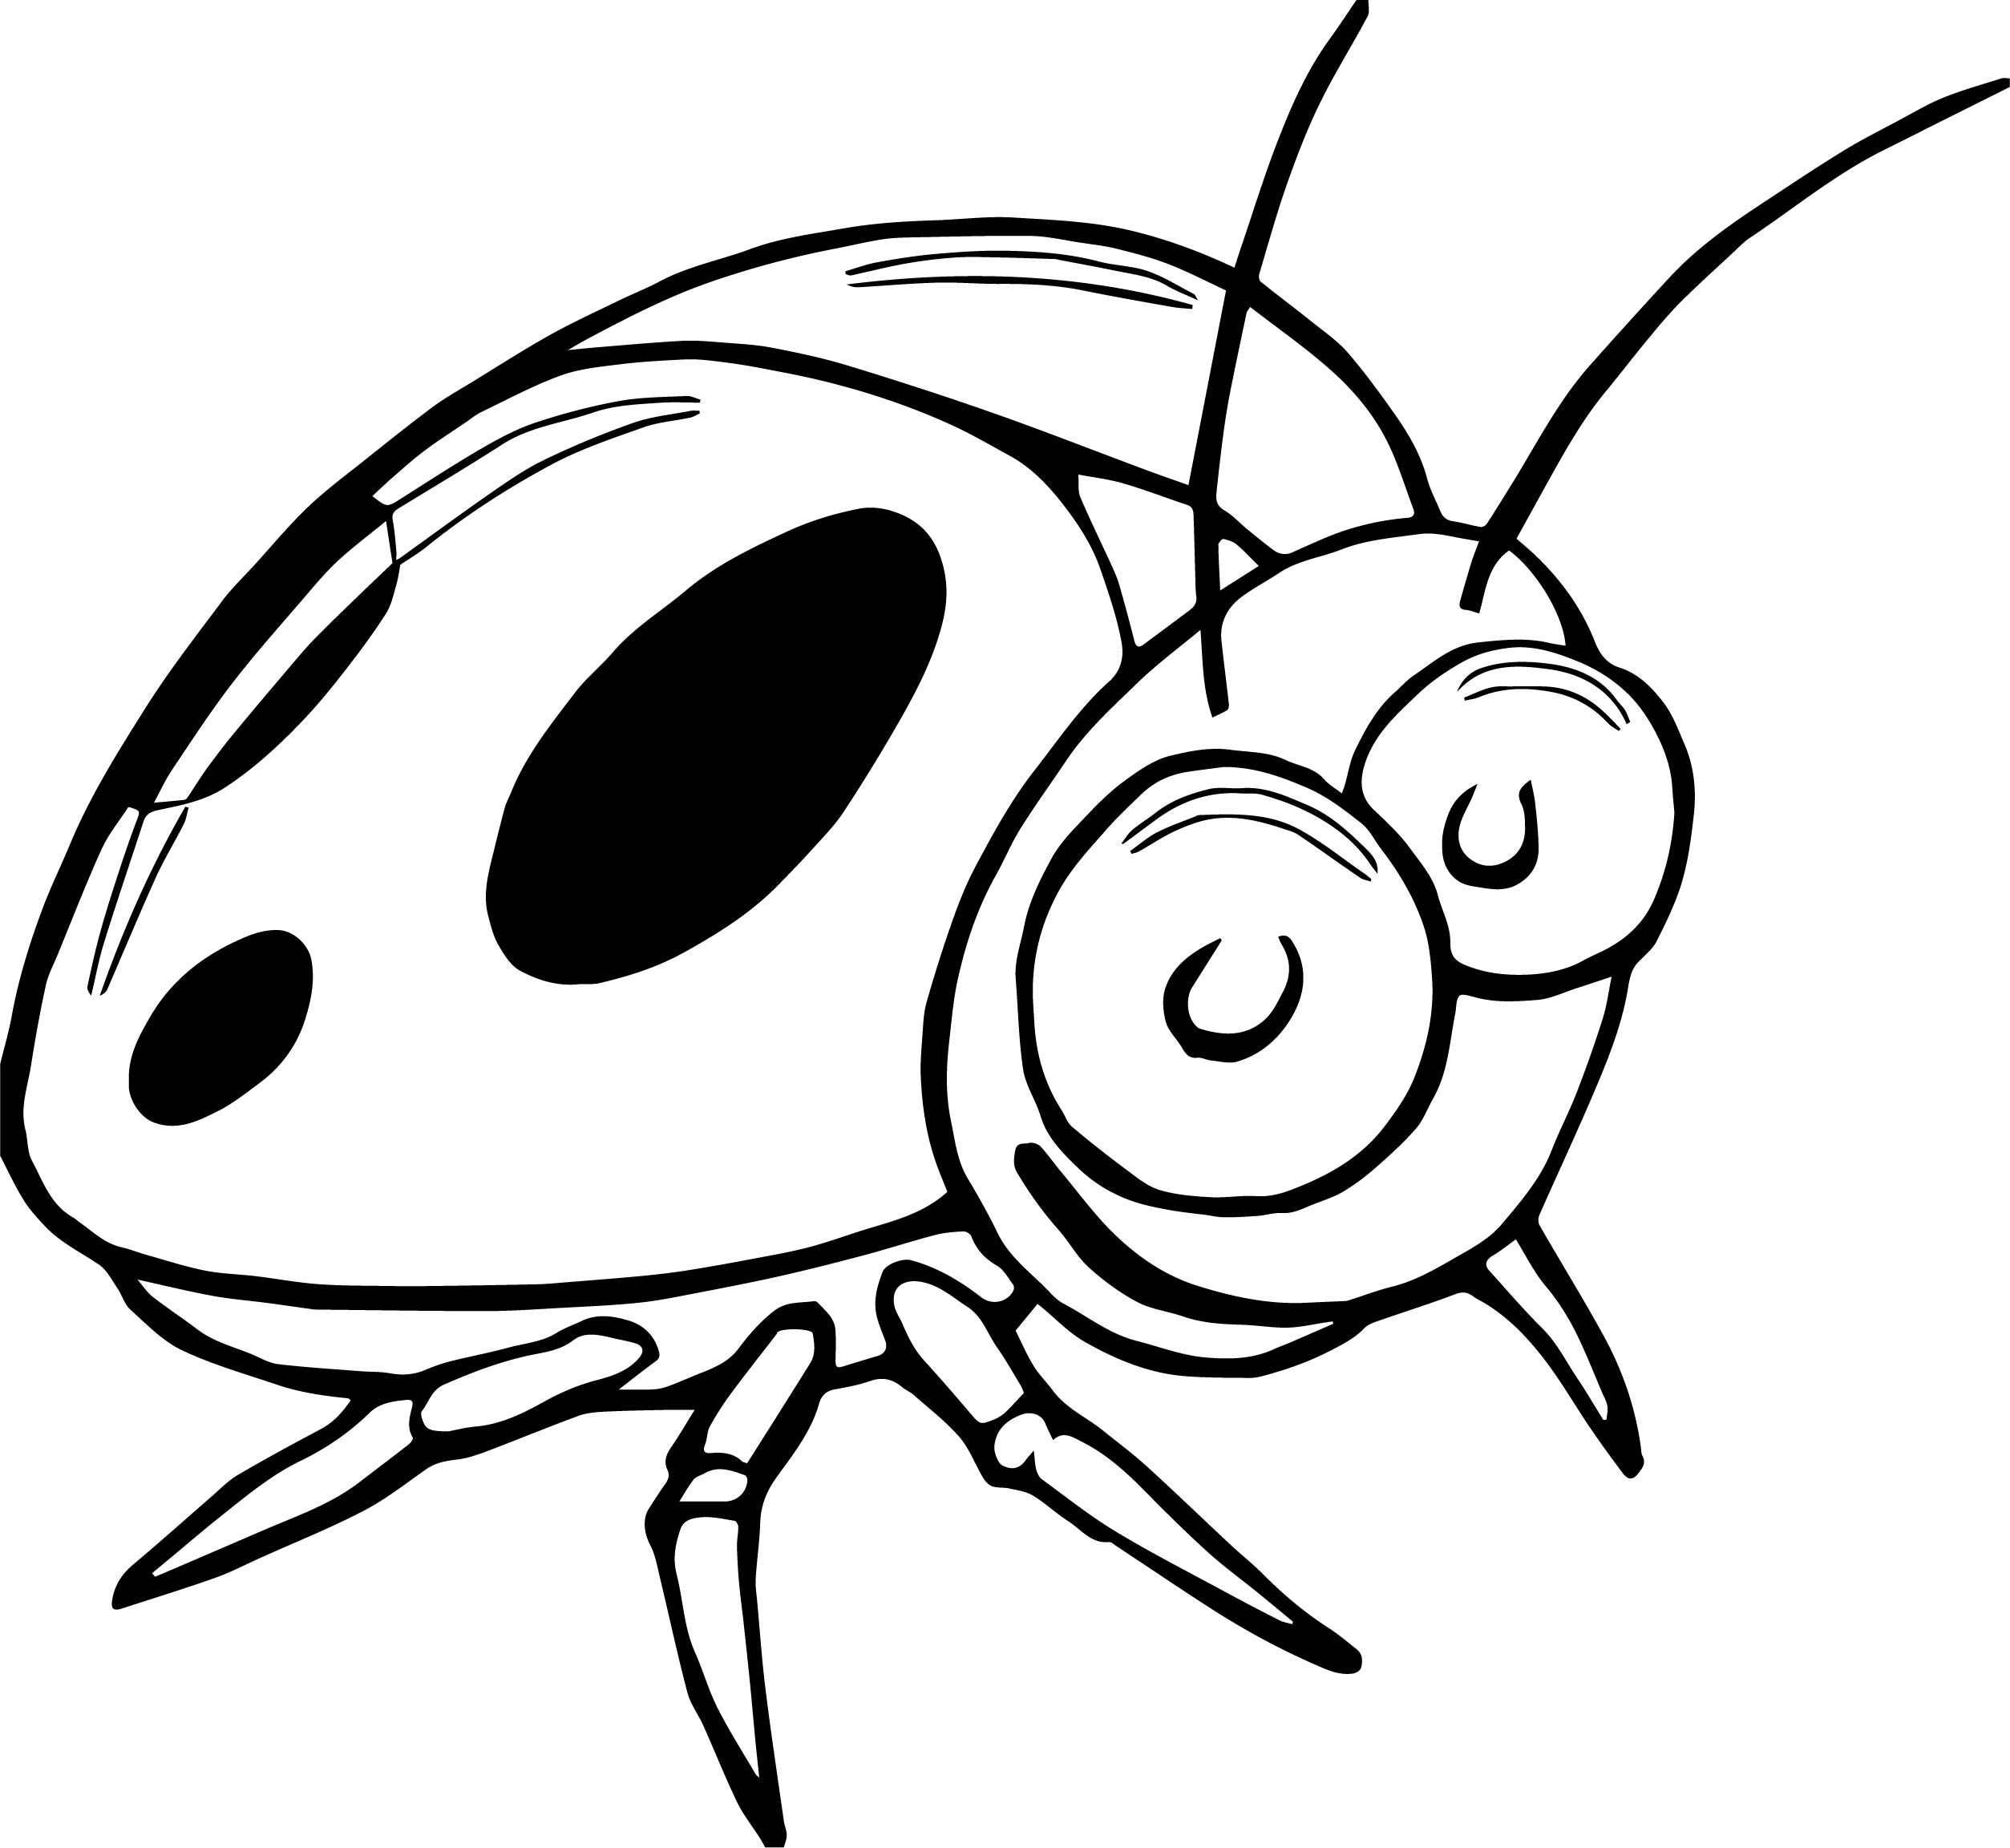 Insect Coloring Page WeColoringPage 05